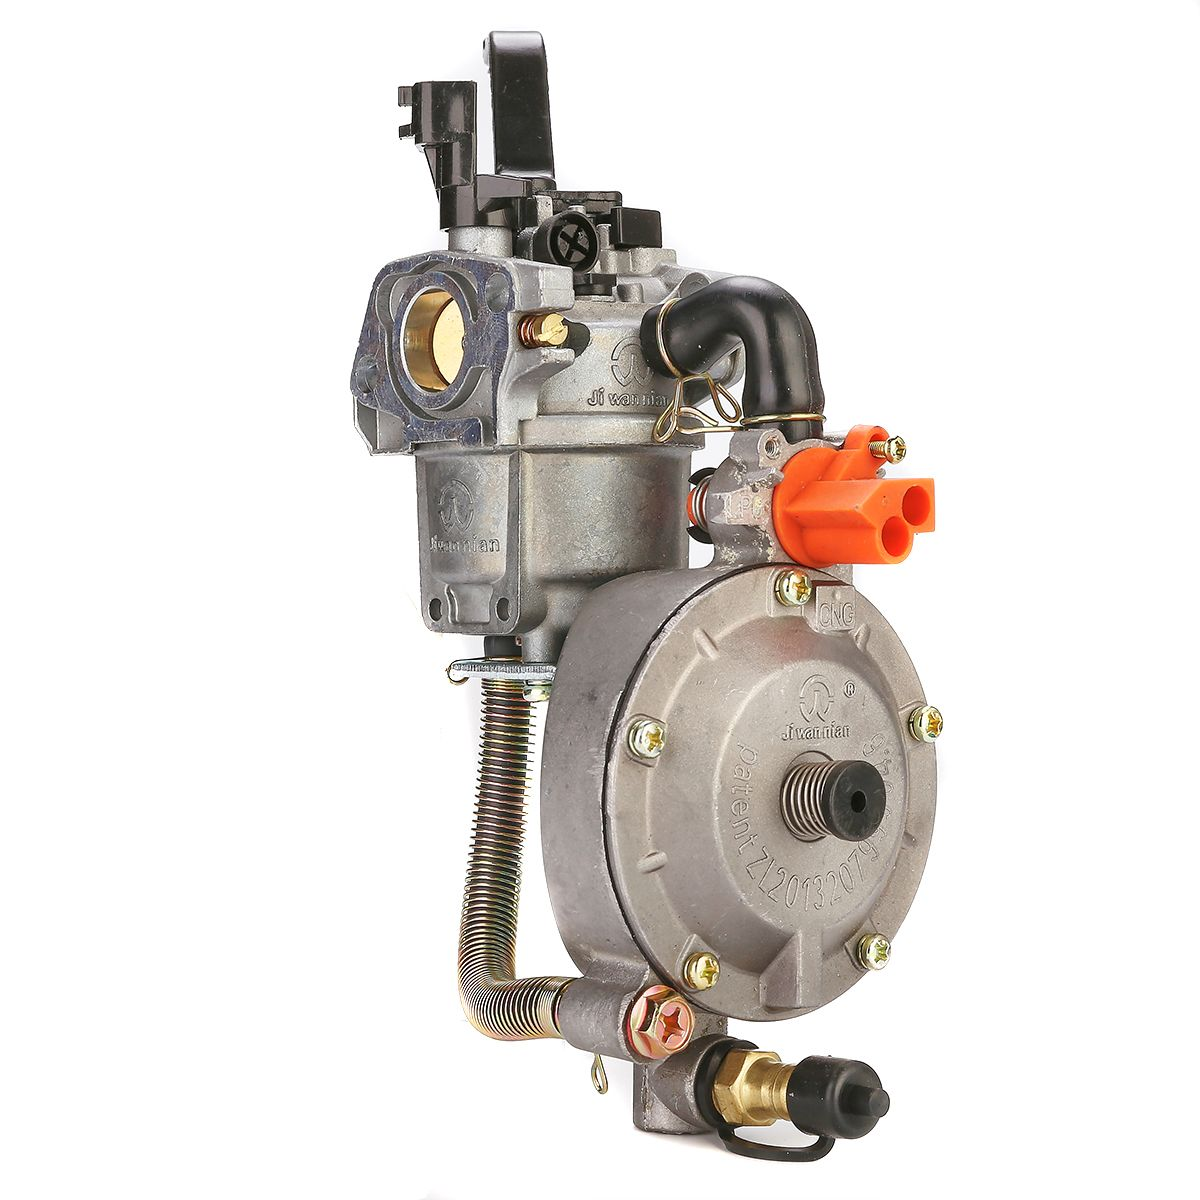 1PC Carburetor Carb Dual Fuel LPG Conversion Parts For GX200 170F Engine Mayitr Garden Tools Parts zama carburetor for grass trimmer garden power tools cutters accessory fit stihl fs55 fs55 t fc55 km55r hl45 zama c1q s66 carb